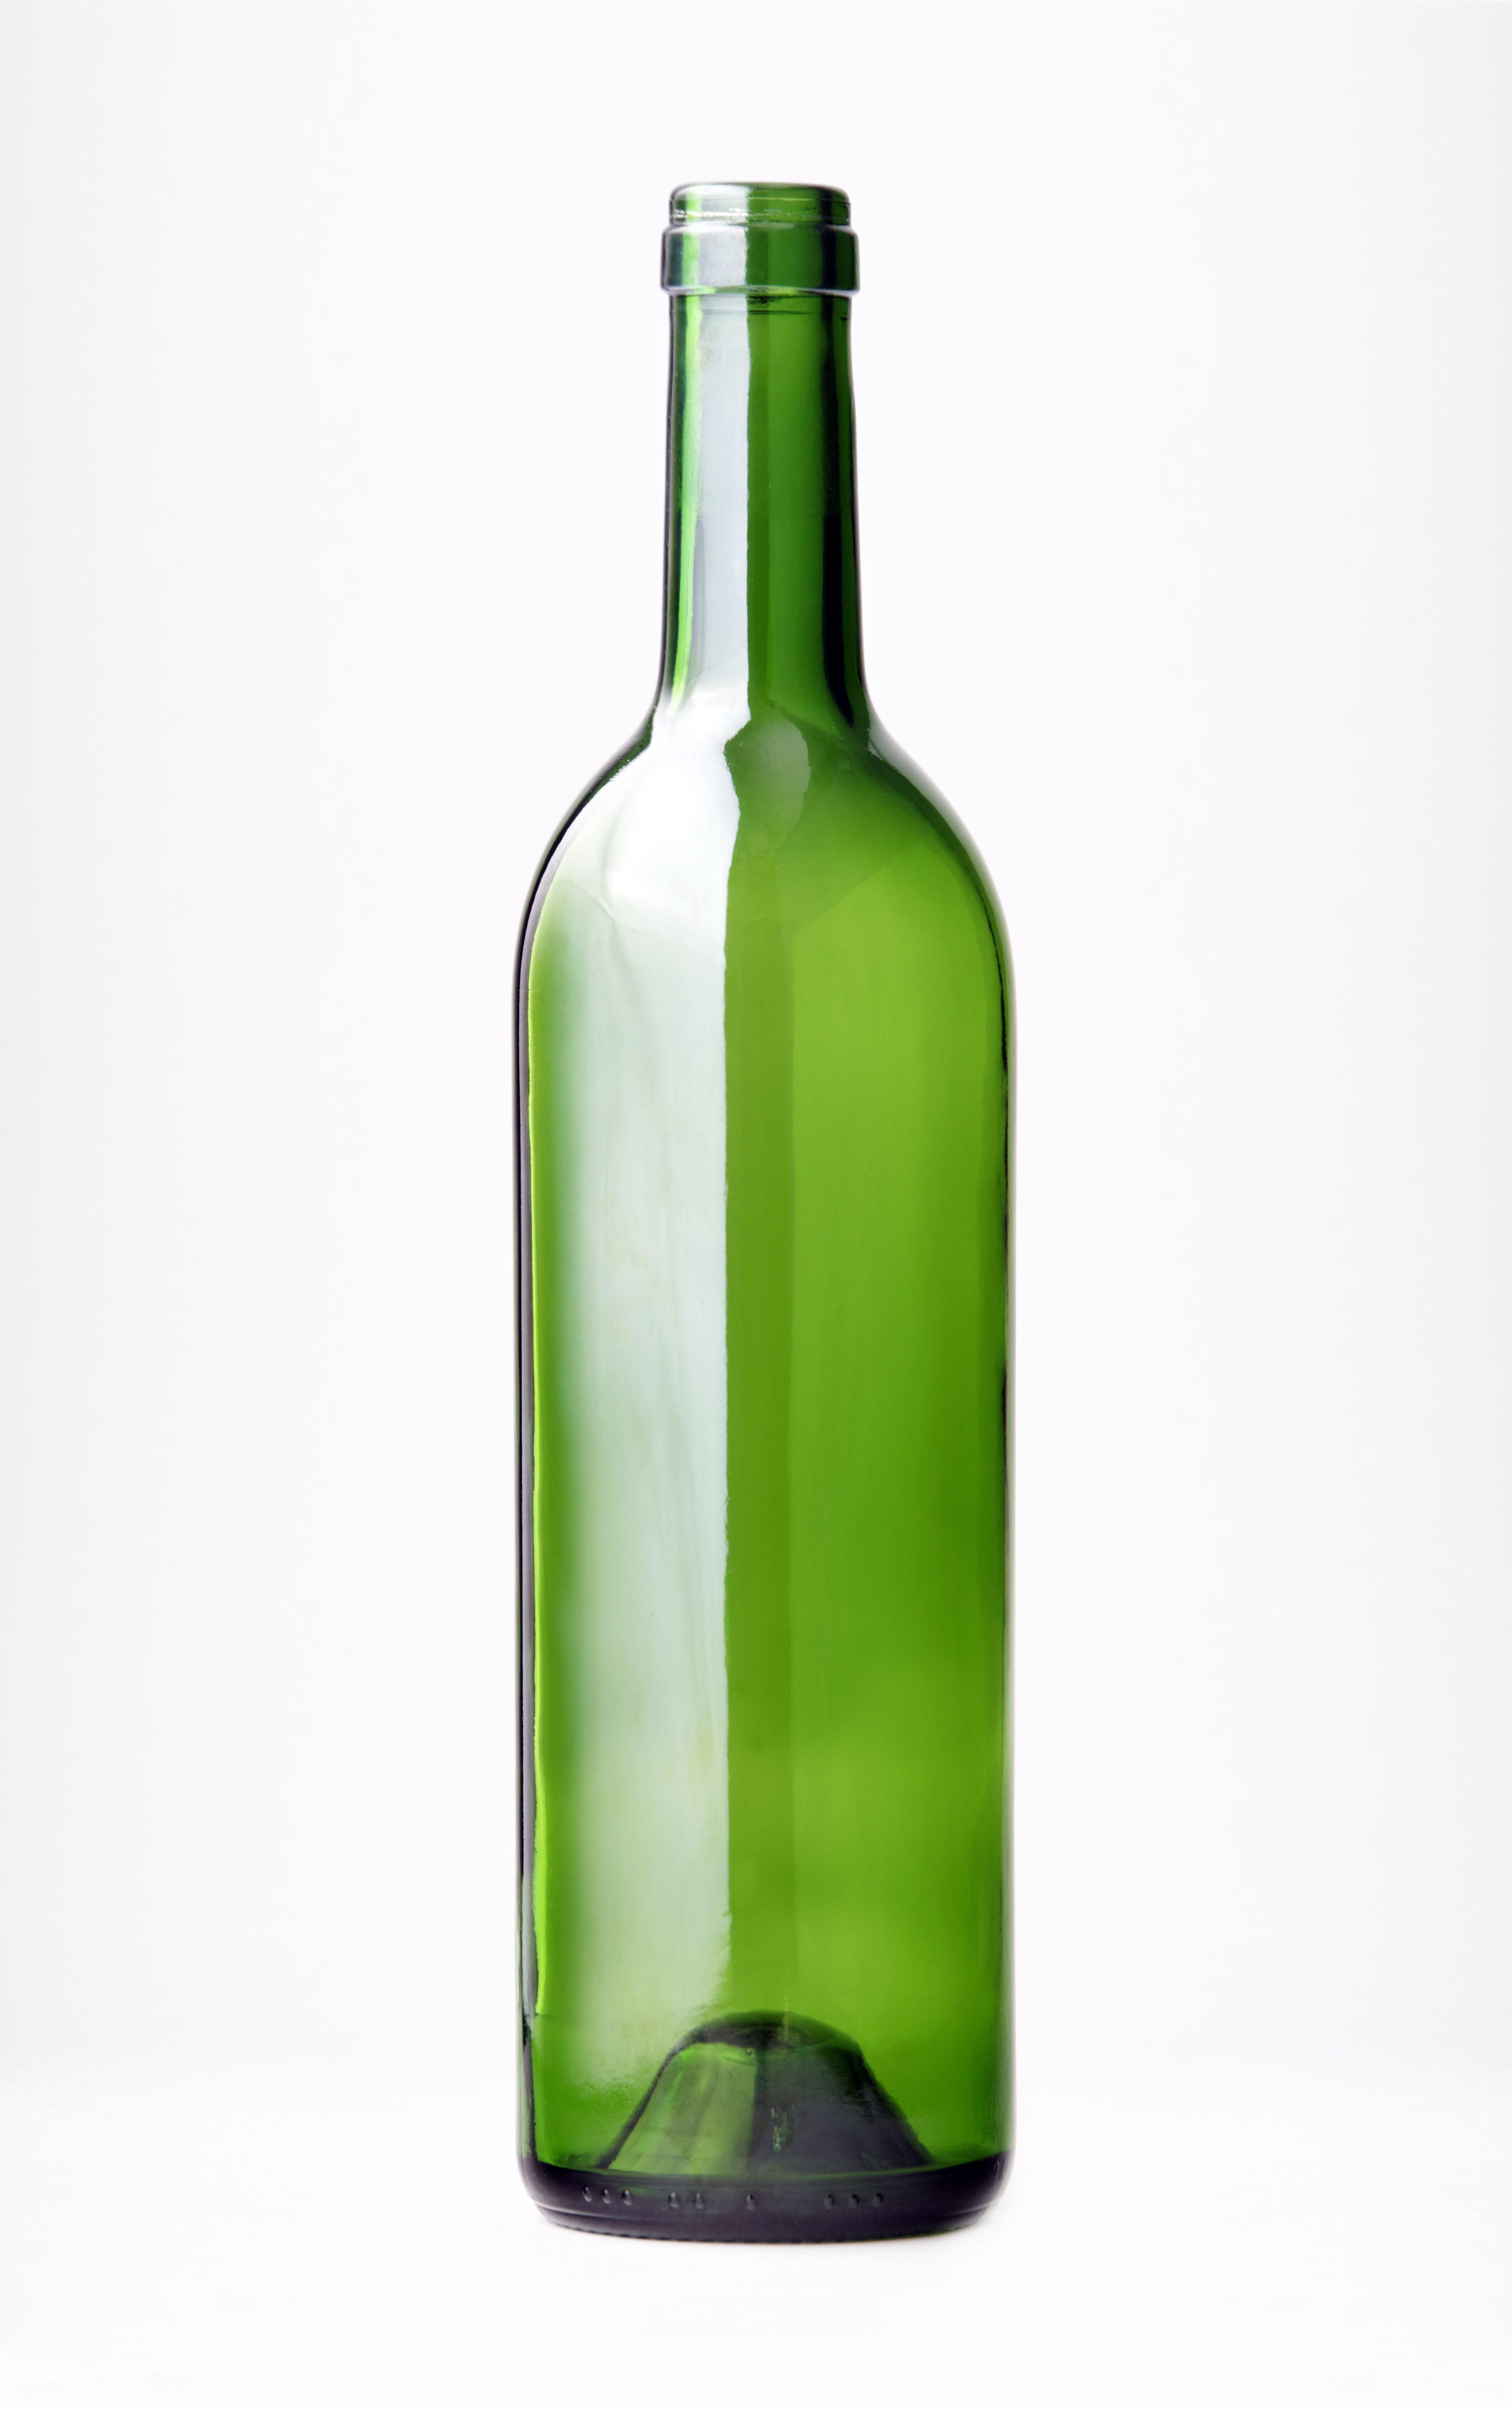 Old wine glass png google search objects pinterest for What to make with old wine bottles